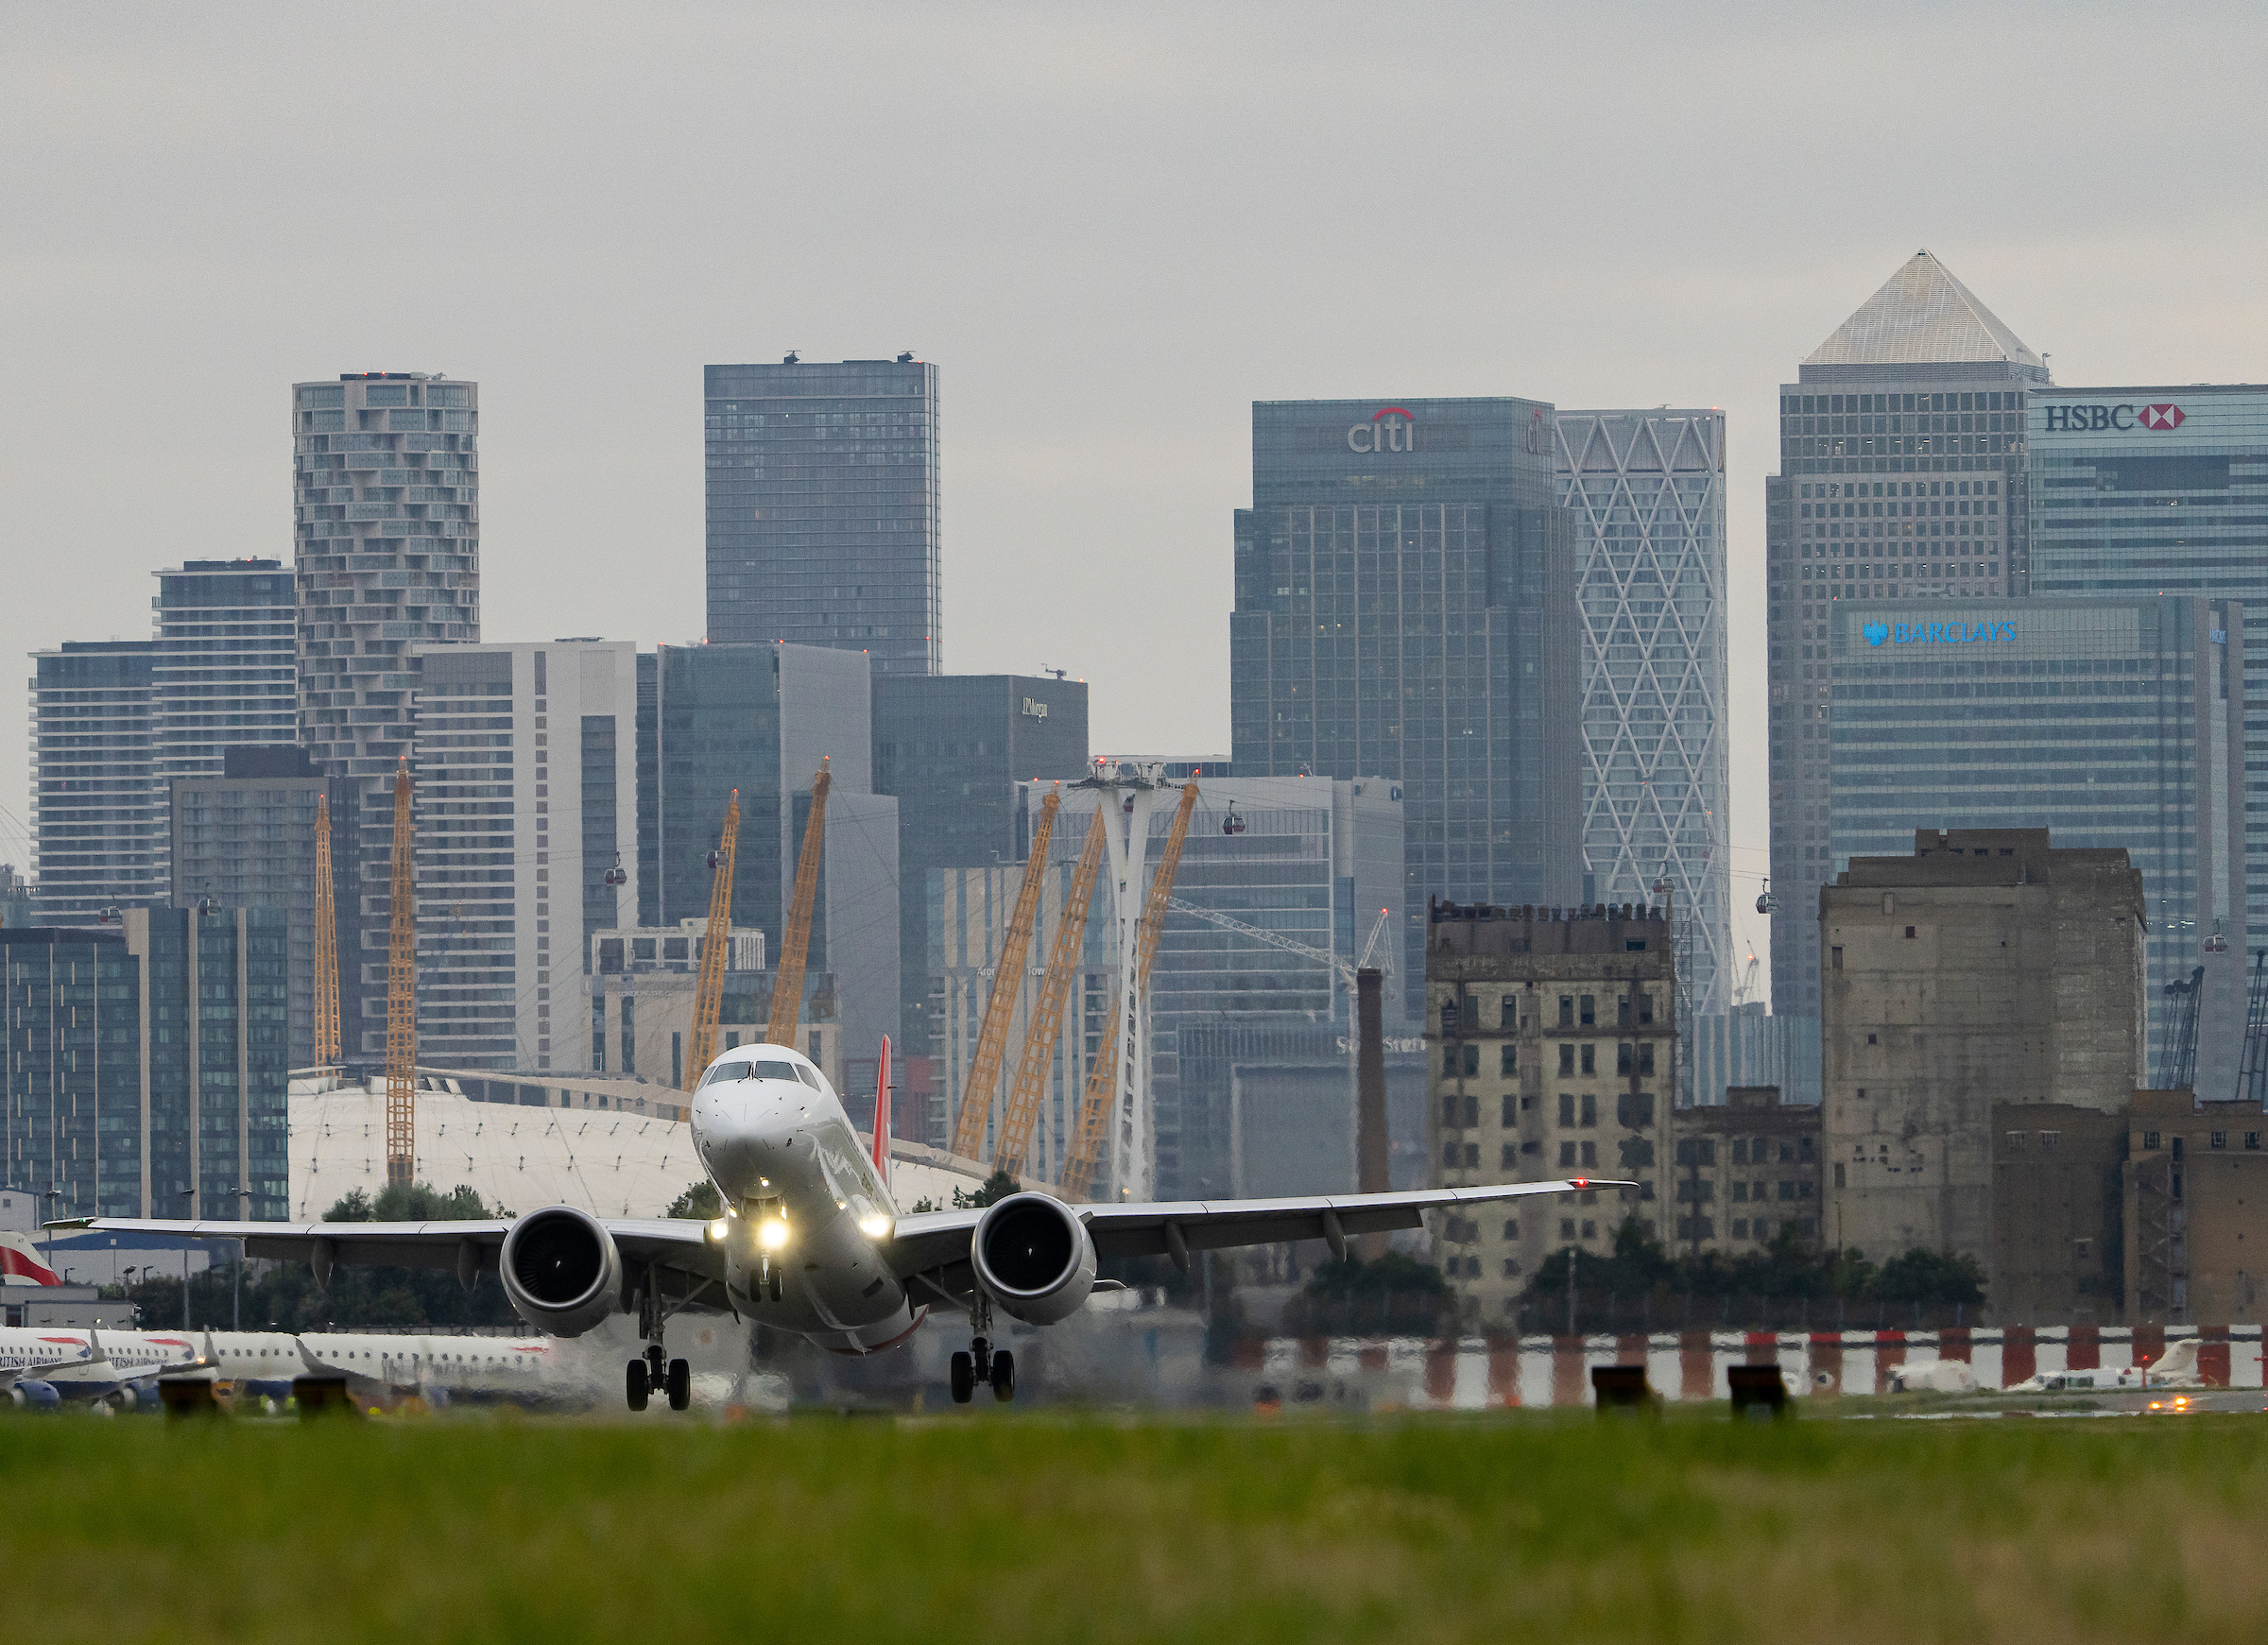 Embraer E190-E2 makes first commercial flight into London City Airport